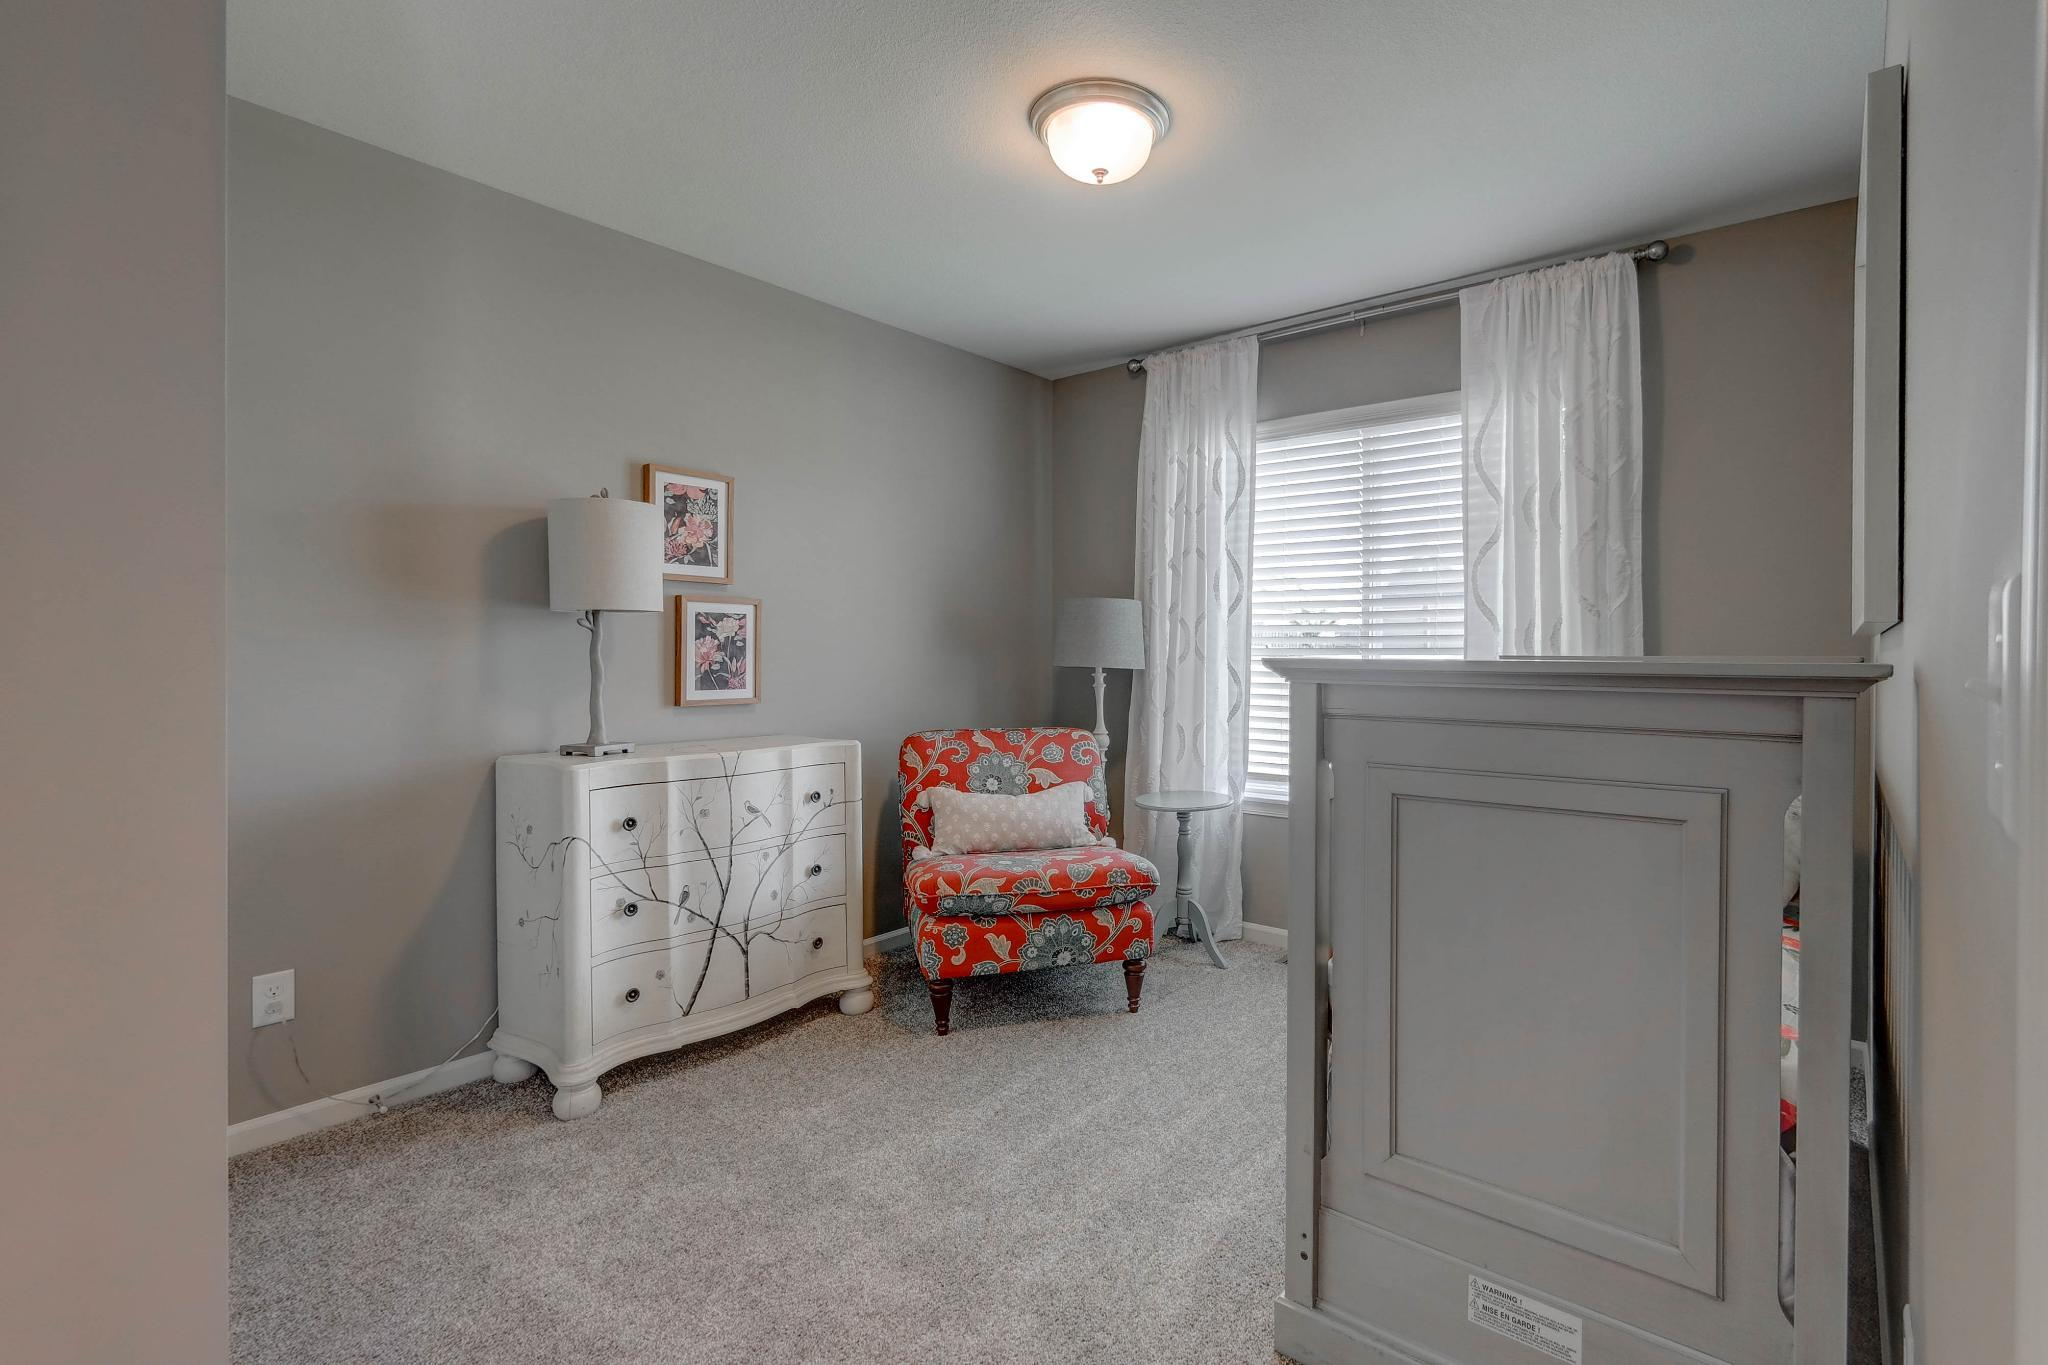 Bedroom featured in the Roanoke By Summit Homes in Kansas City, MO